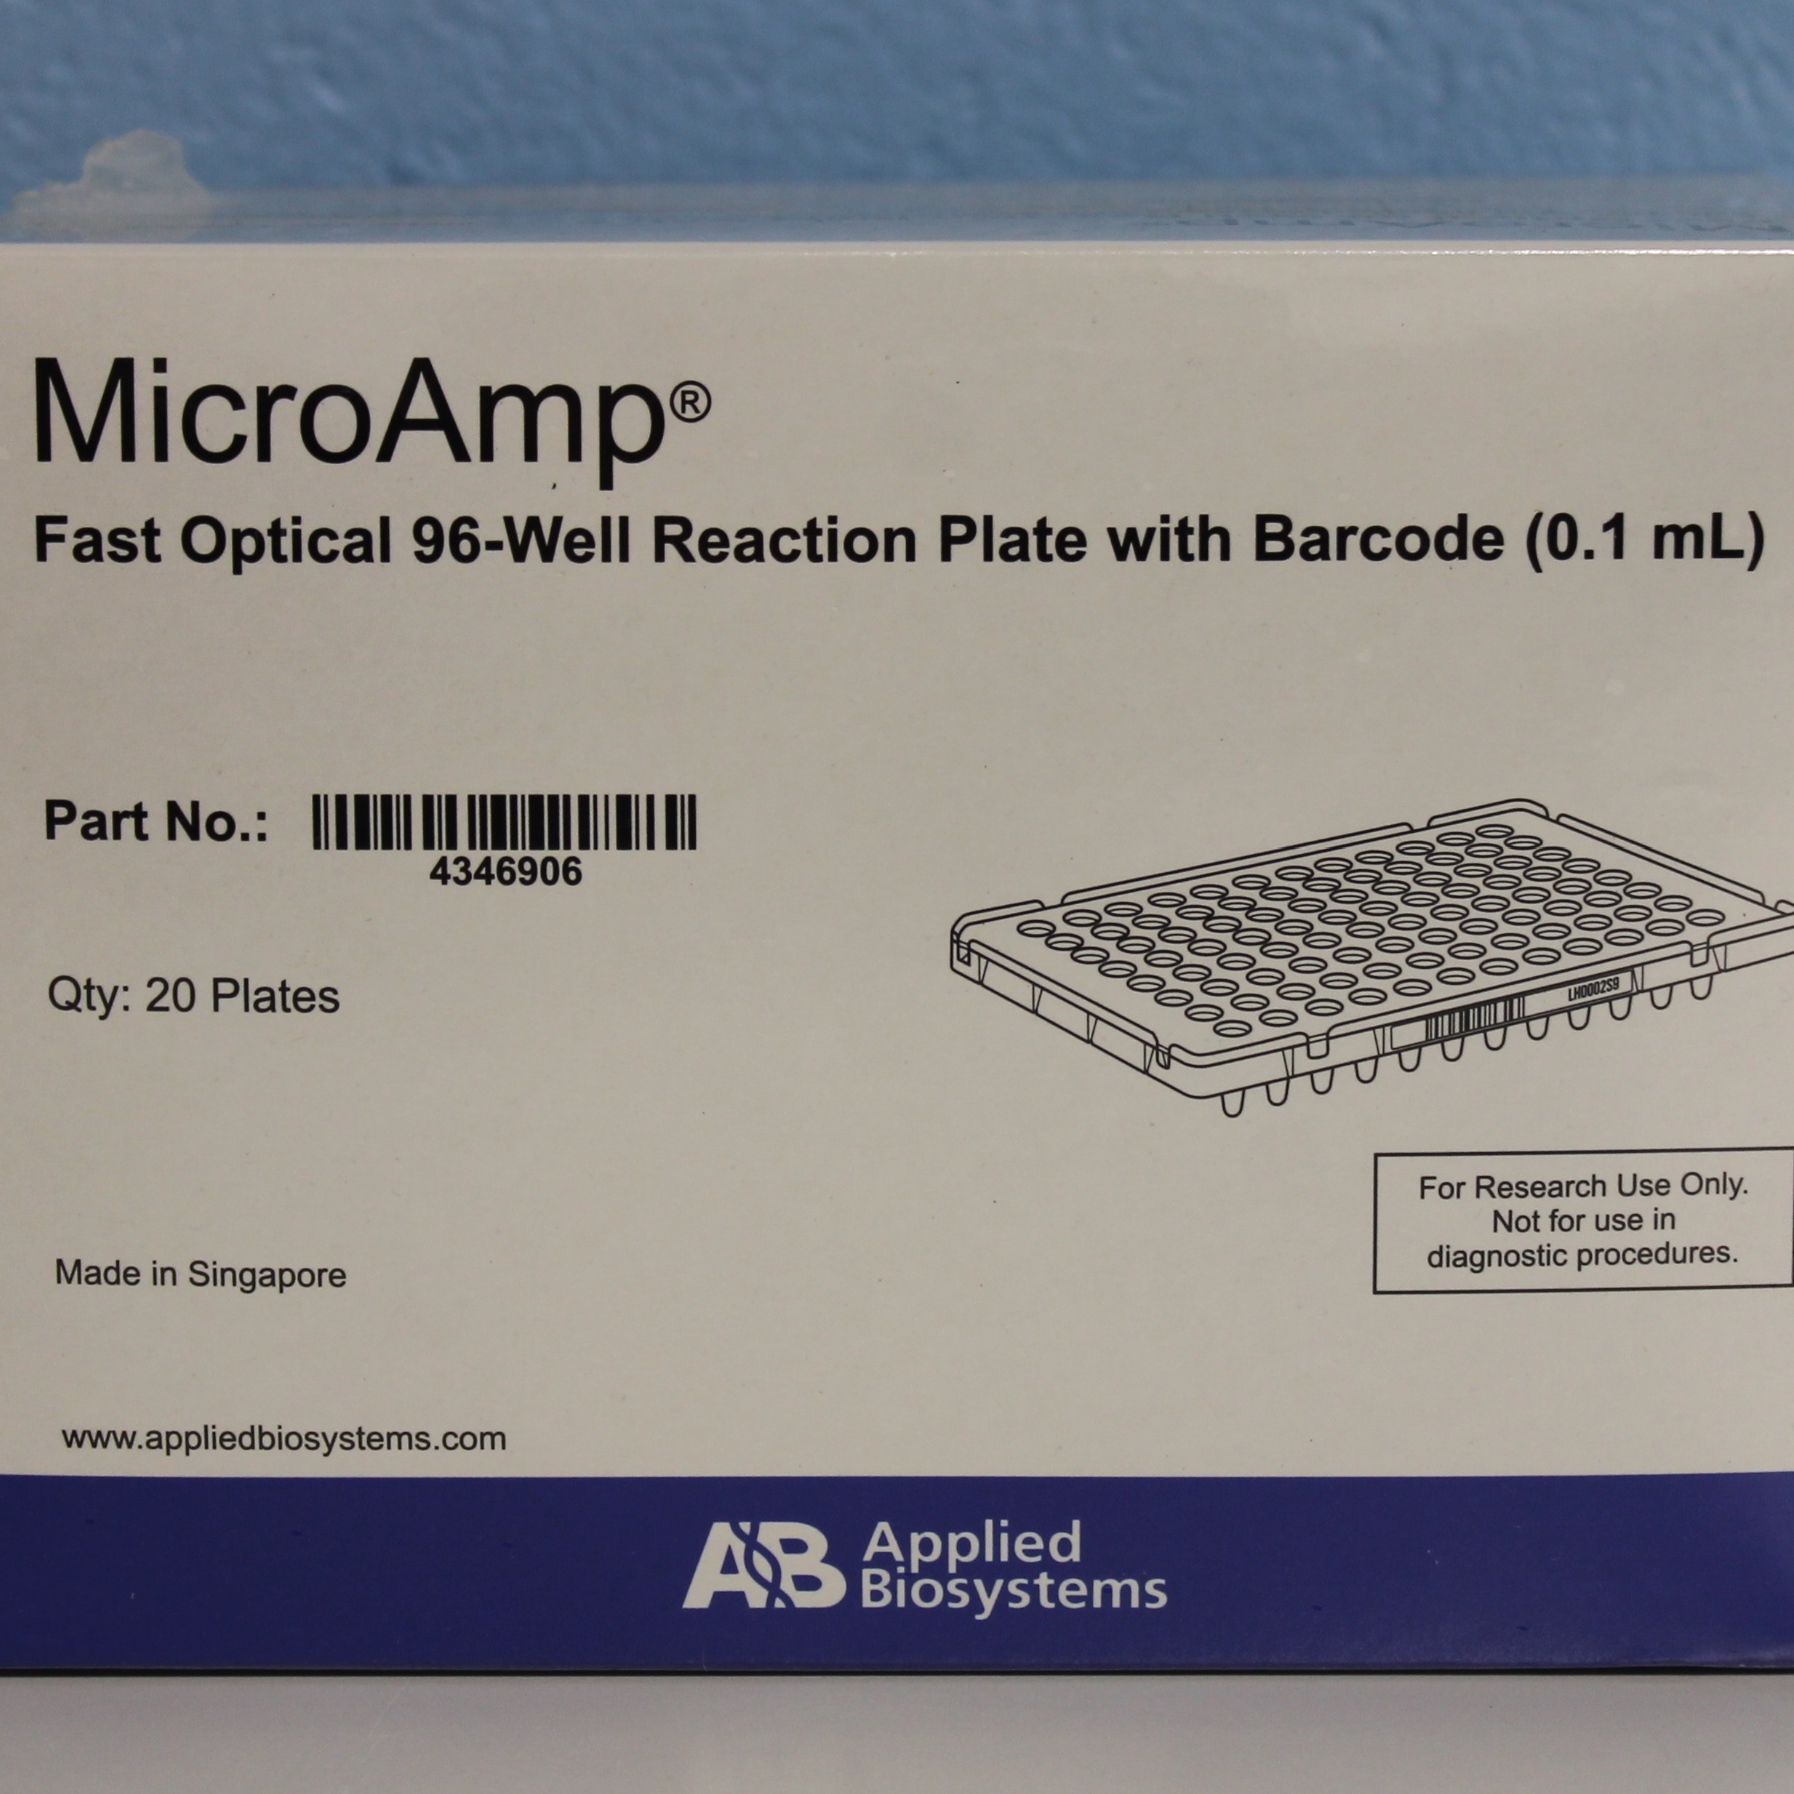 Applied Biosystems MicroAmp Fast Optical 96-Well Reaction Plate with Barcode, 0.1 mL CAT No. 4346906 Image